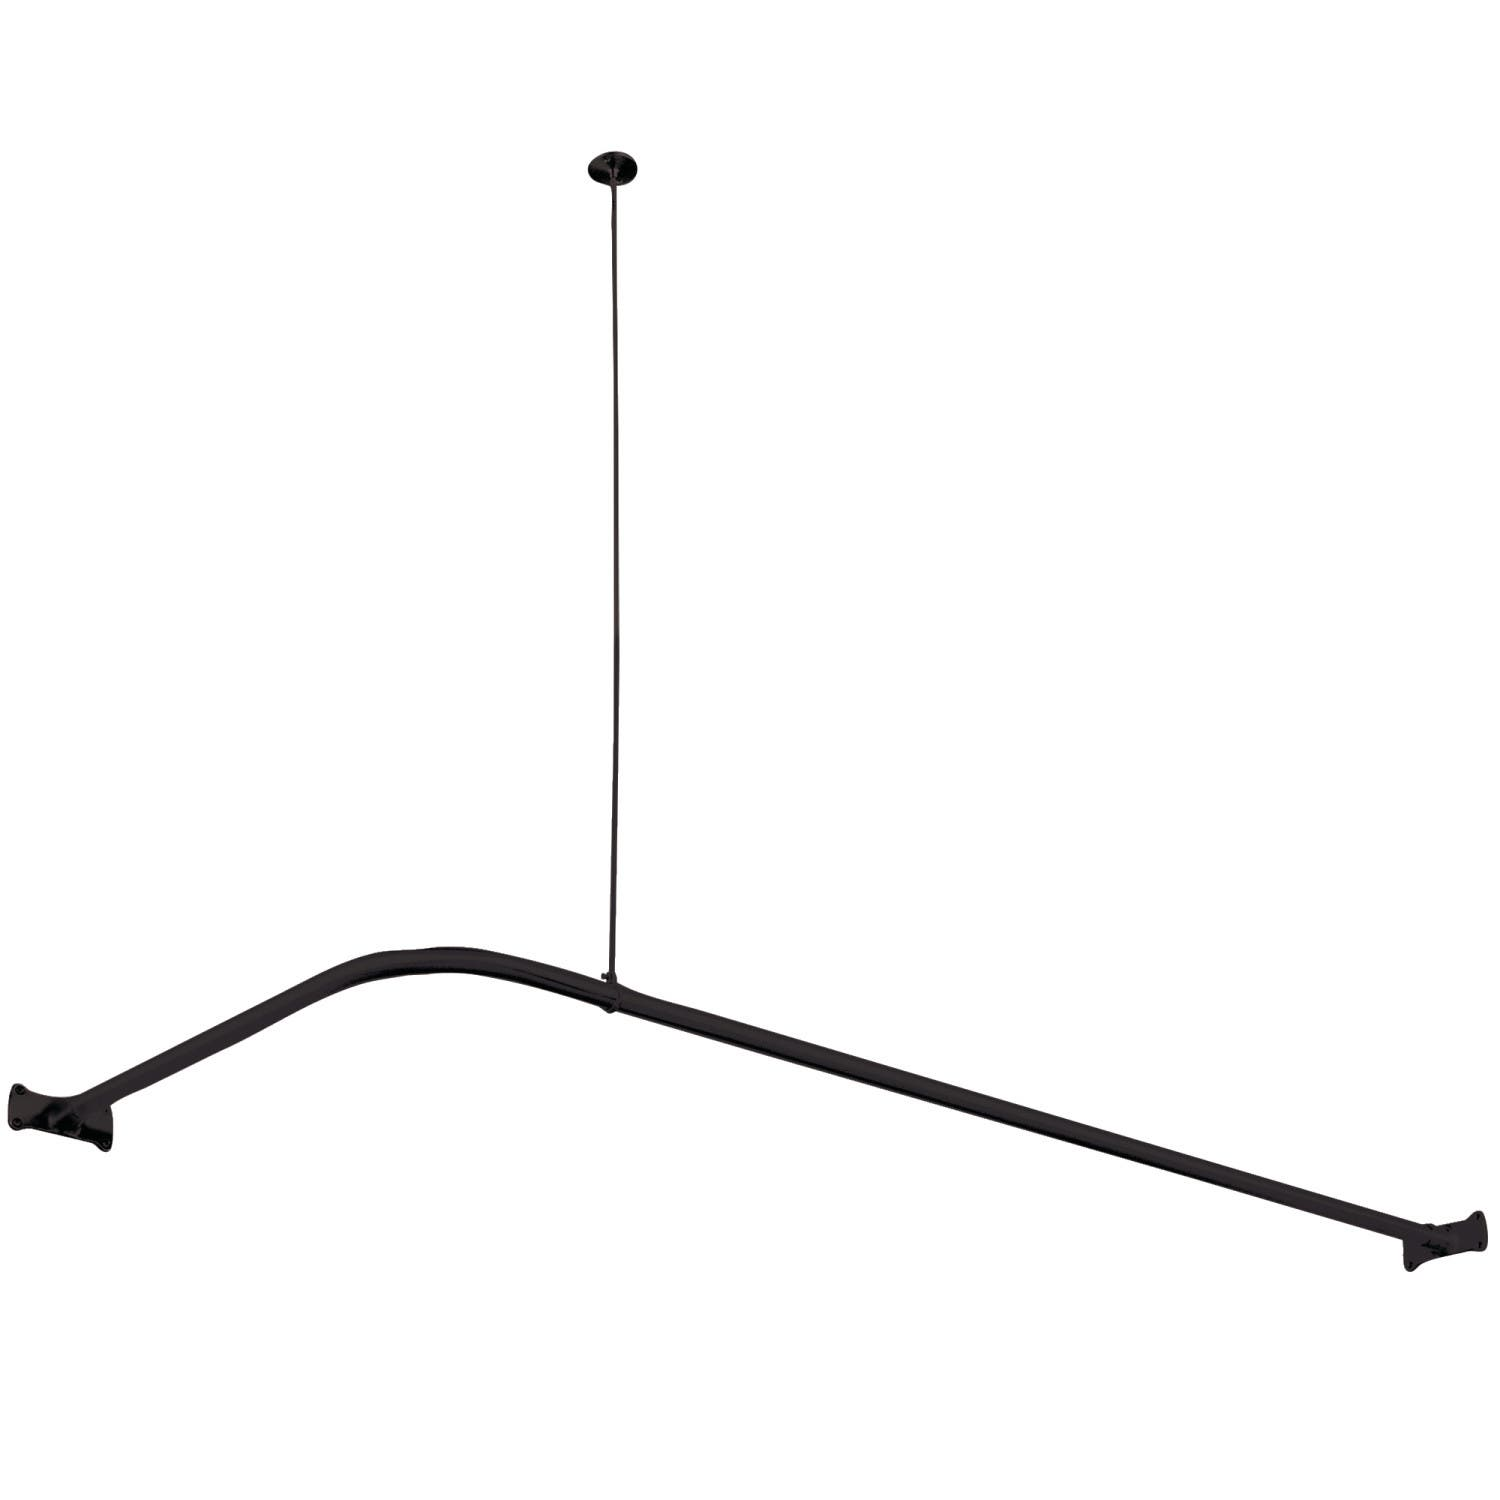 Kingston Brass CC3140 L Shaped Shower Curtain Rod Matte Black